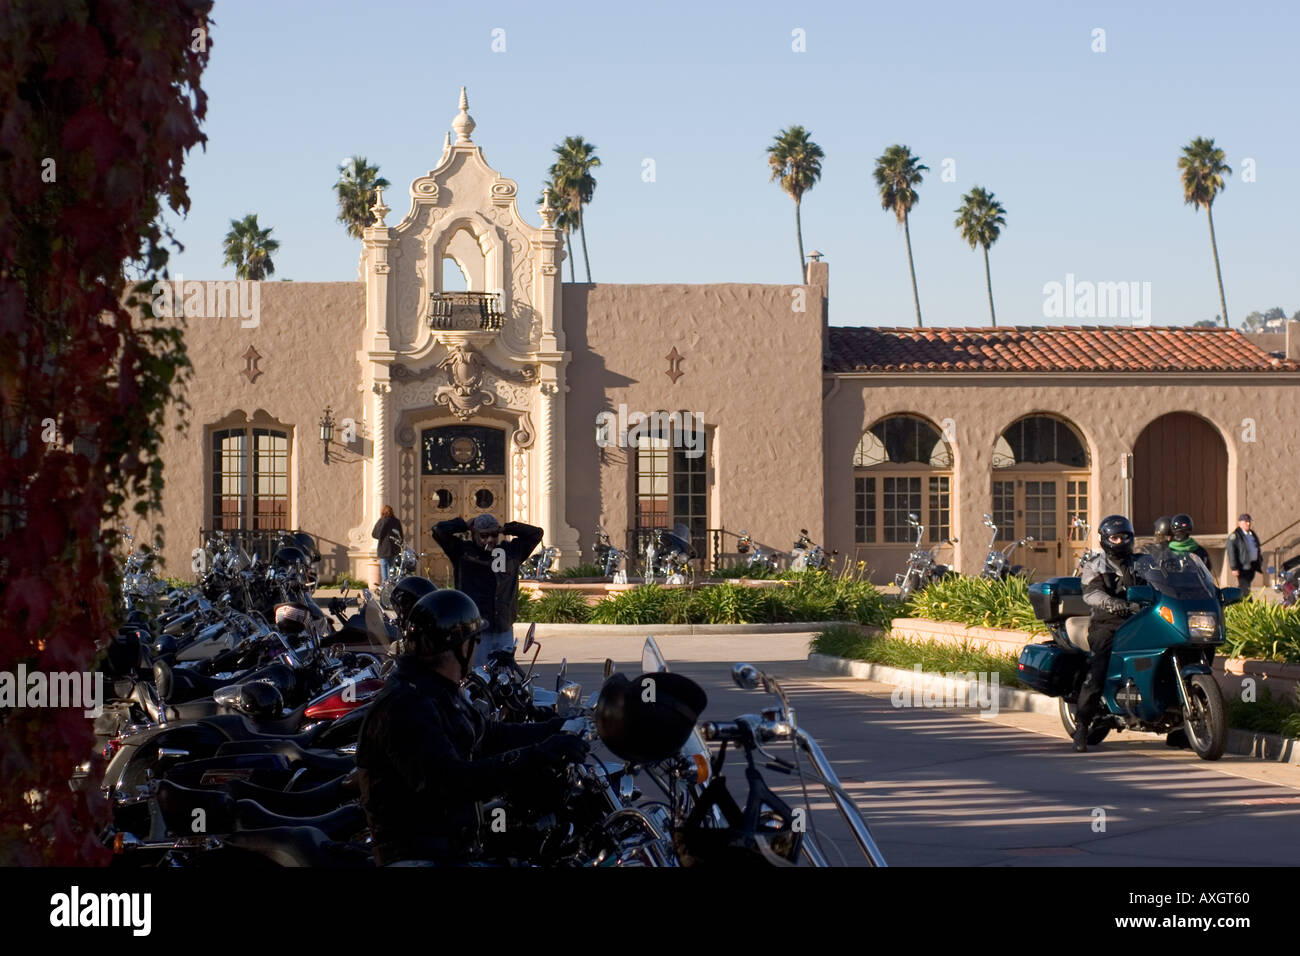 Overflow Parking At The Glendale Train Station For Charity Motor